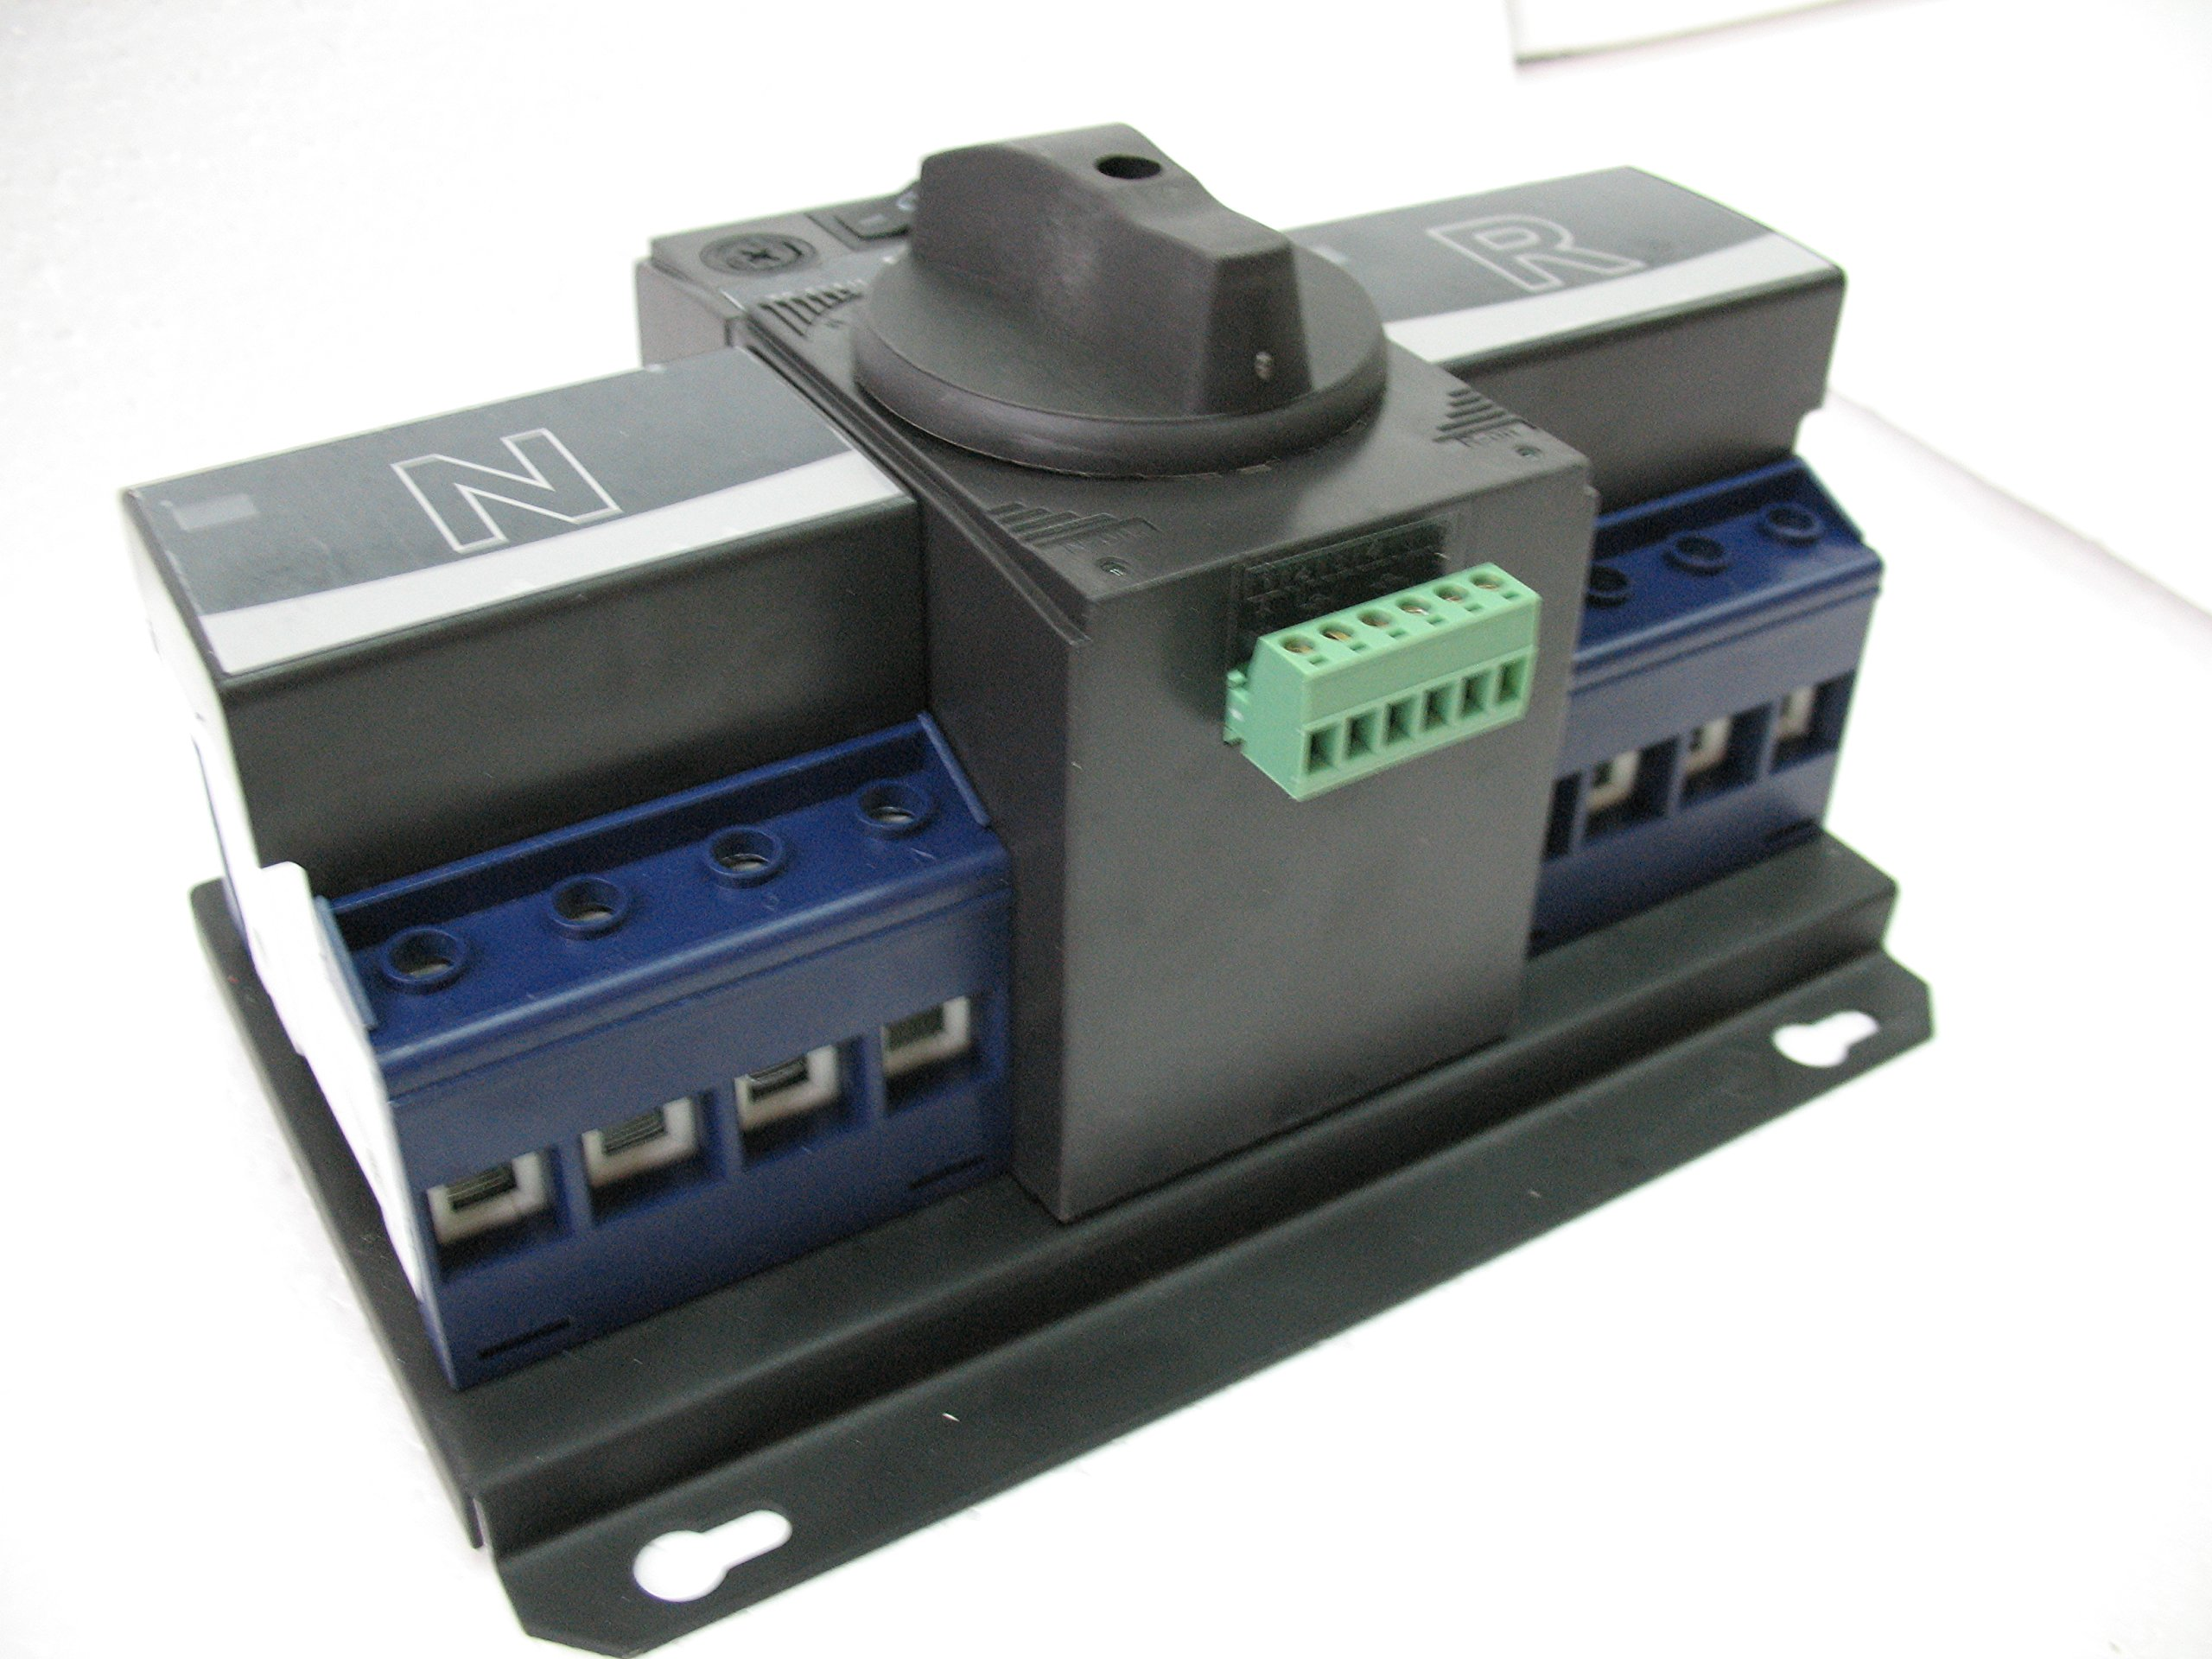 ELPRO ATS-63A, 120/208V 50-60Hz Automatic Transfer Changeover Switch, 2-3 phase, 4P by ELPRO (Image #2)